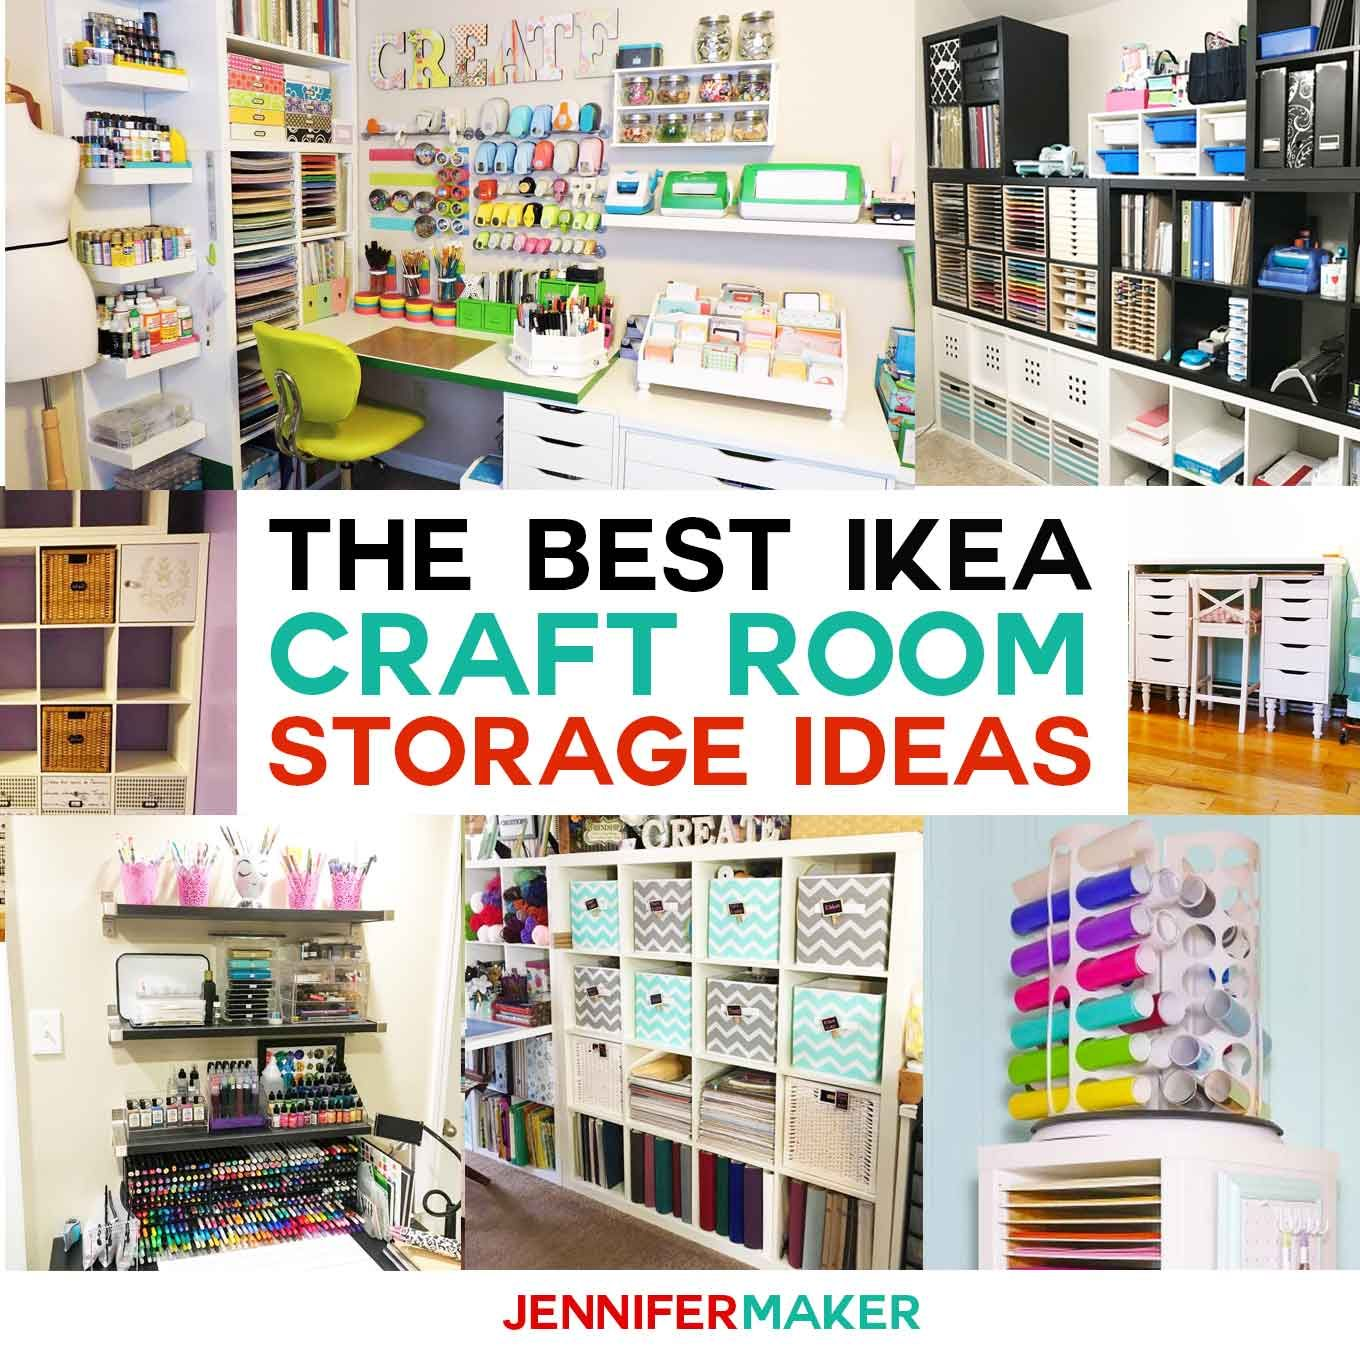 27 Excellent Image Of Ideas For Scrapbooking Room Ikea Craft